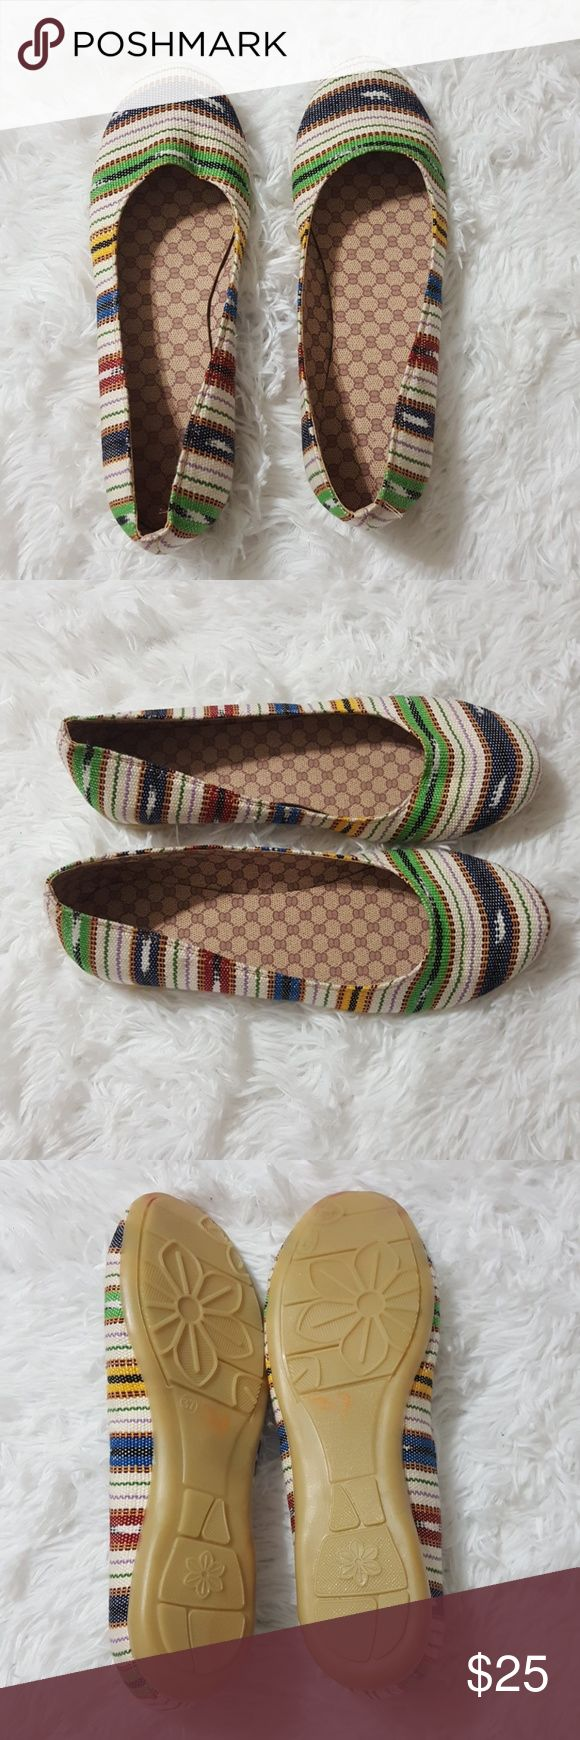 Cute Aztec Boho Stripe Ballet Flats Brand: Unbranded Color: Multi Size (Women's): 37(Sz 7) Style: Round Toe Ballet Flat Condition: NWOB Pattern: Stripe Aztec Flats have never been worn. On sole of shoe there are paint stains from manufacturer pic#5, overall shoe is in nwob condition.   Buyers can expect: Careful packaging, Fast shipping, & Delivery confirmation with each item purchased! PET FREE HOME & SMOKE-FREE HOME. Please note: Due to lighting and monitors, the items colours may be…